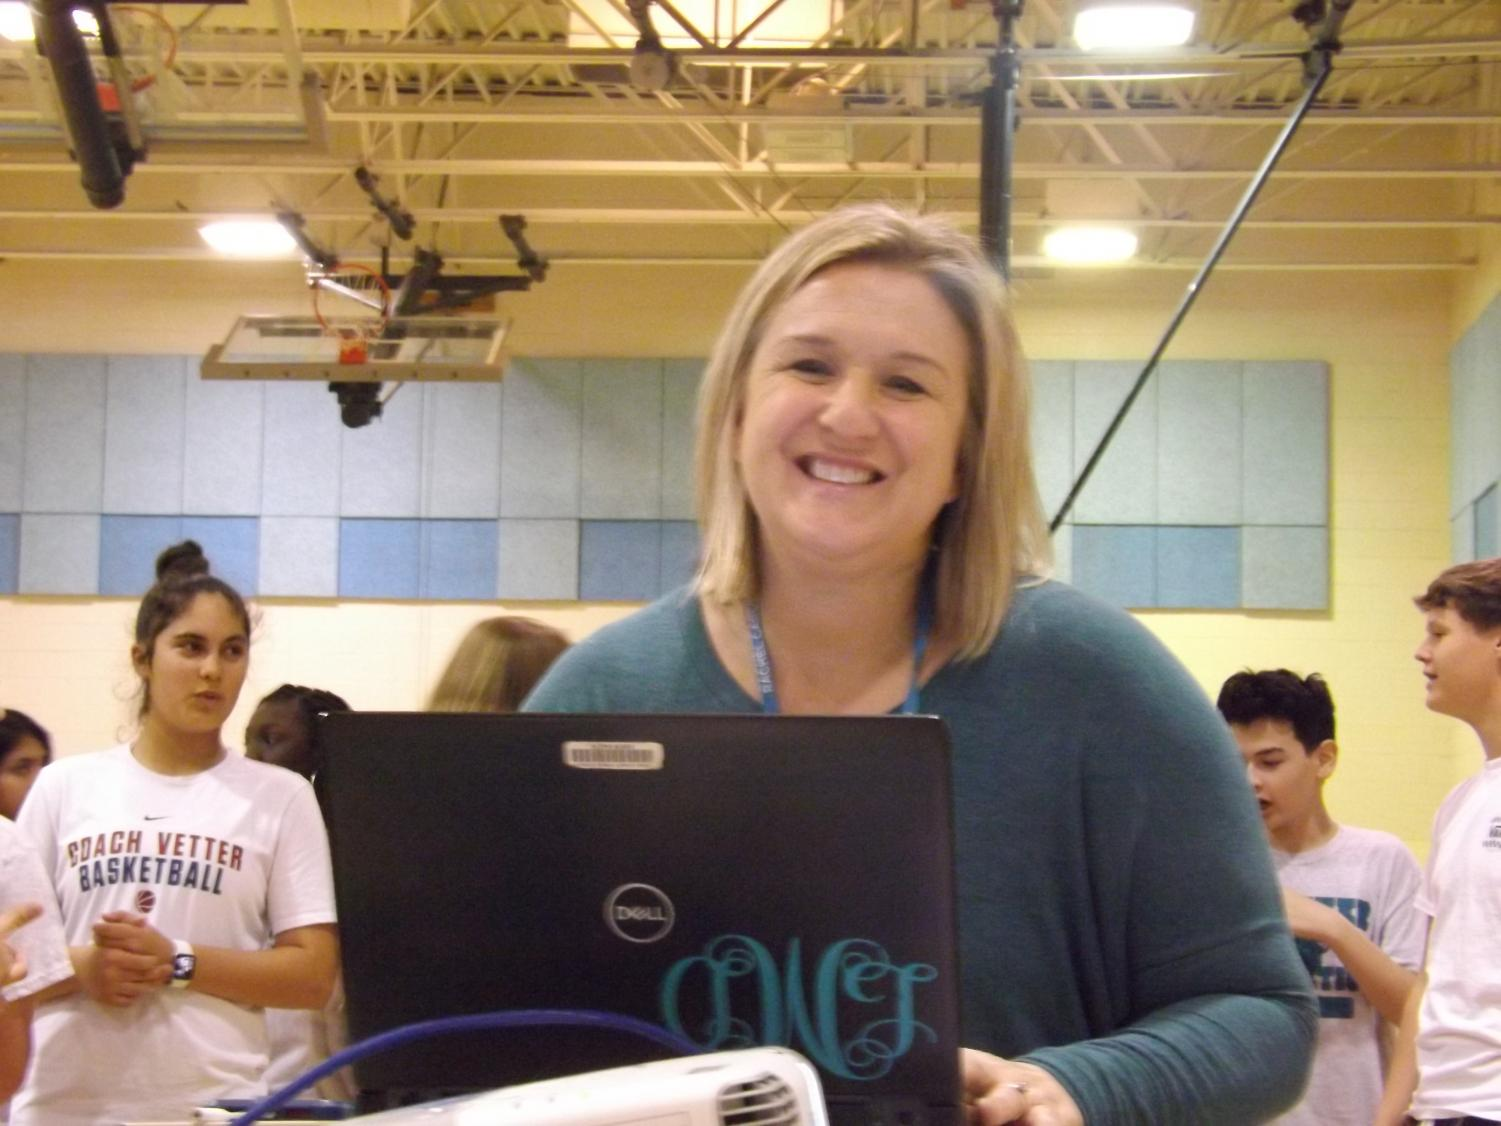 Ms. Molnar teaches P.E. class to RCMS students. 'I just love teaching especially during the 5K season,' she said.